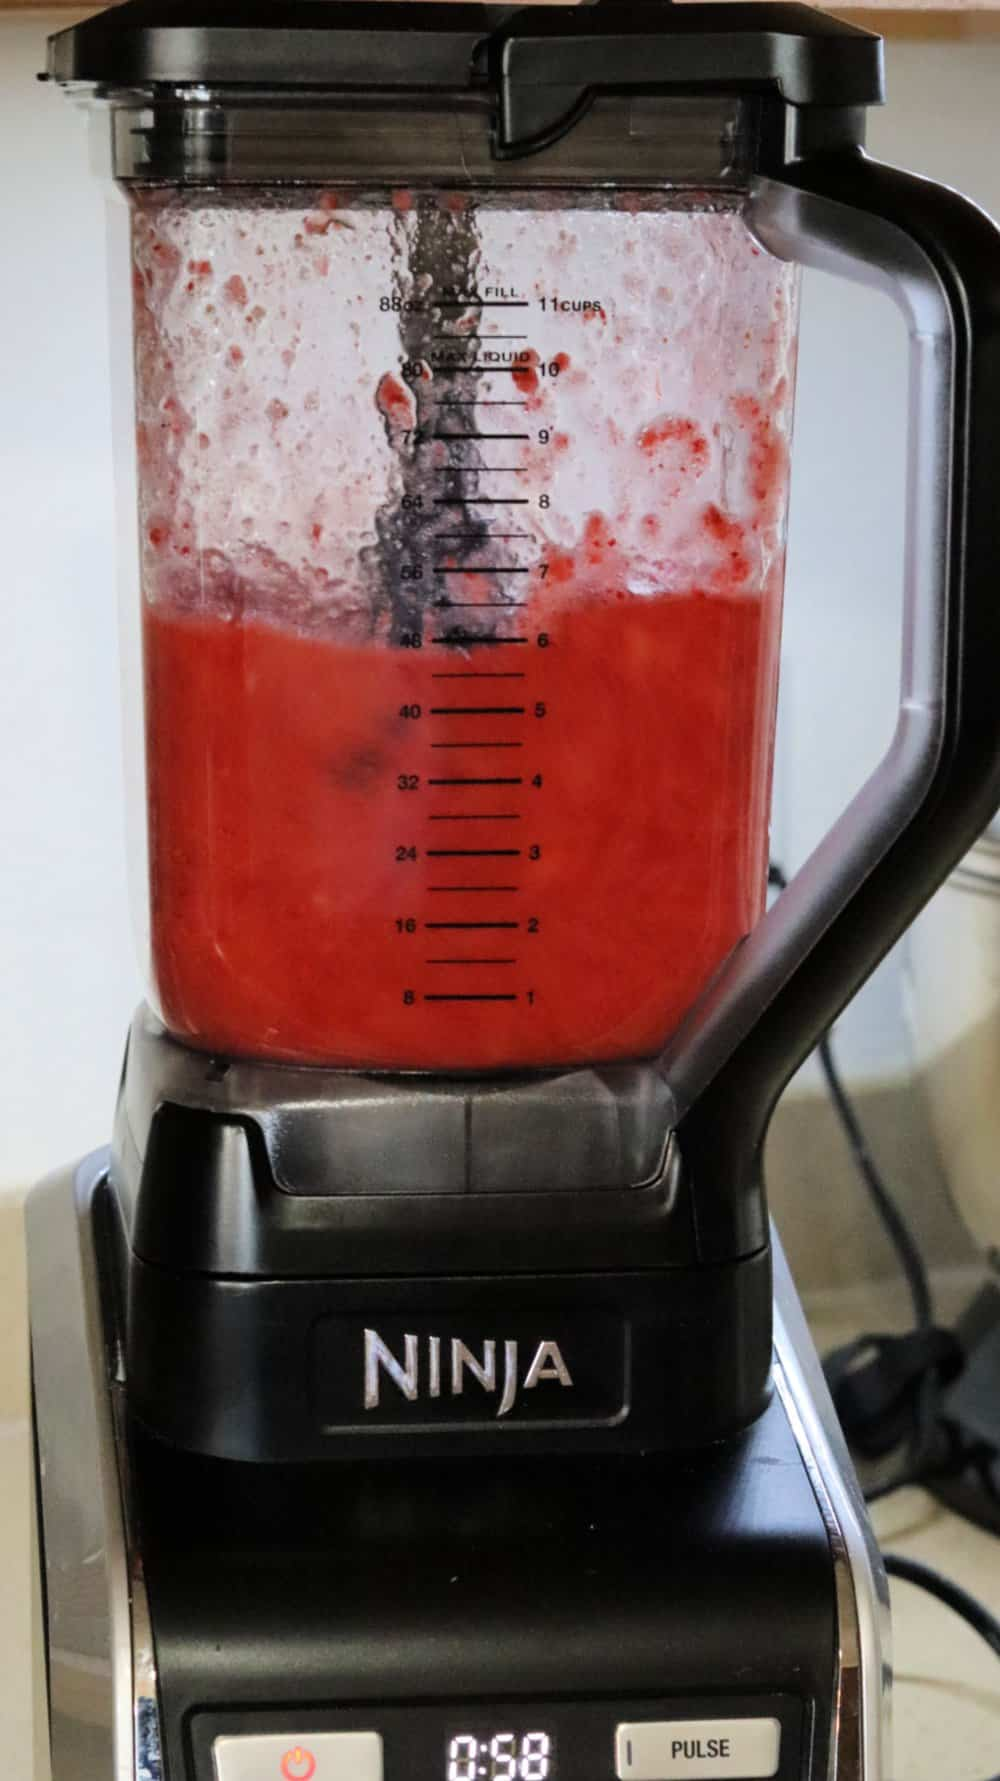 Strawberry froze in a ninja